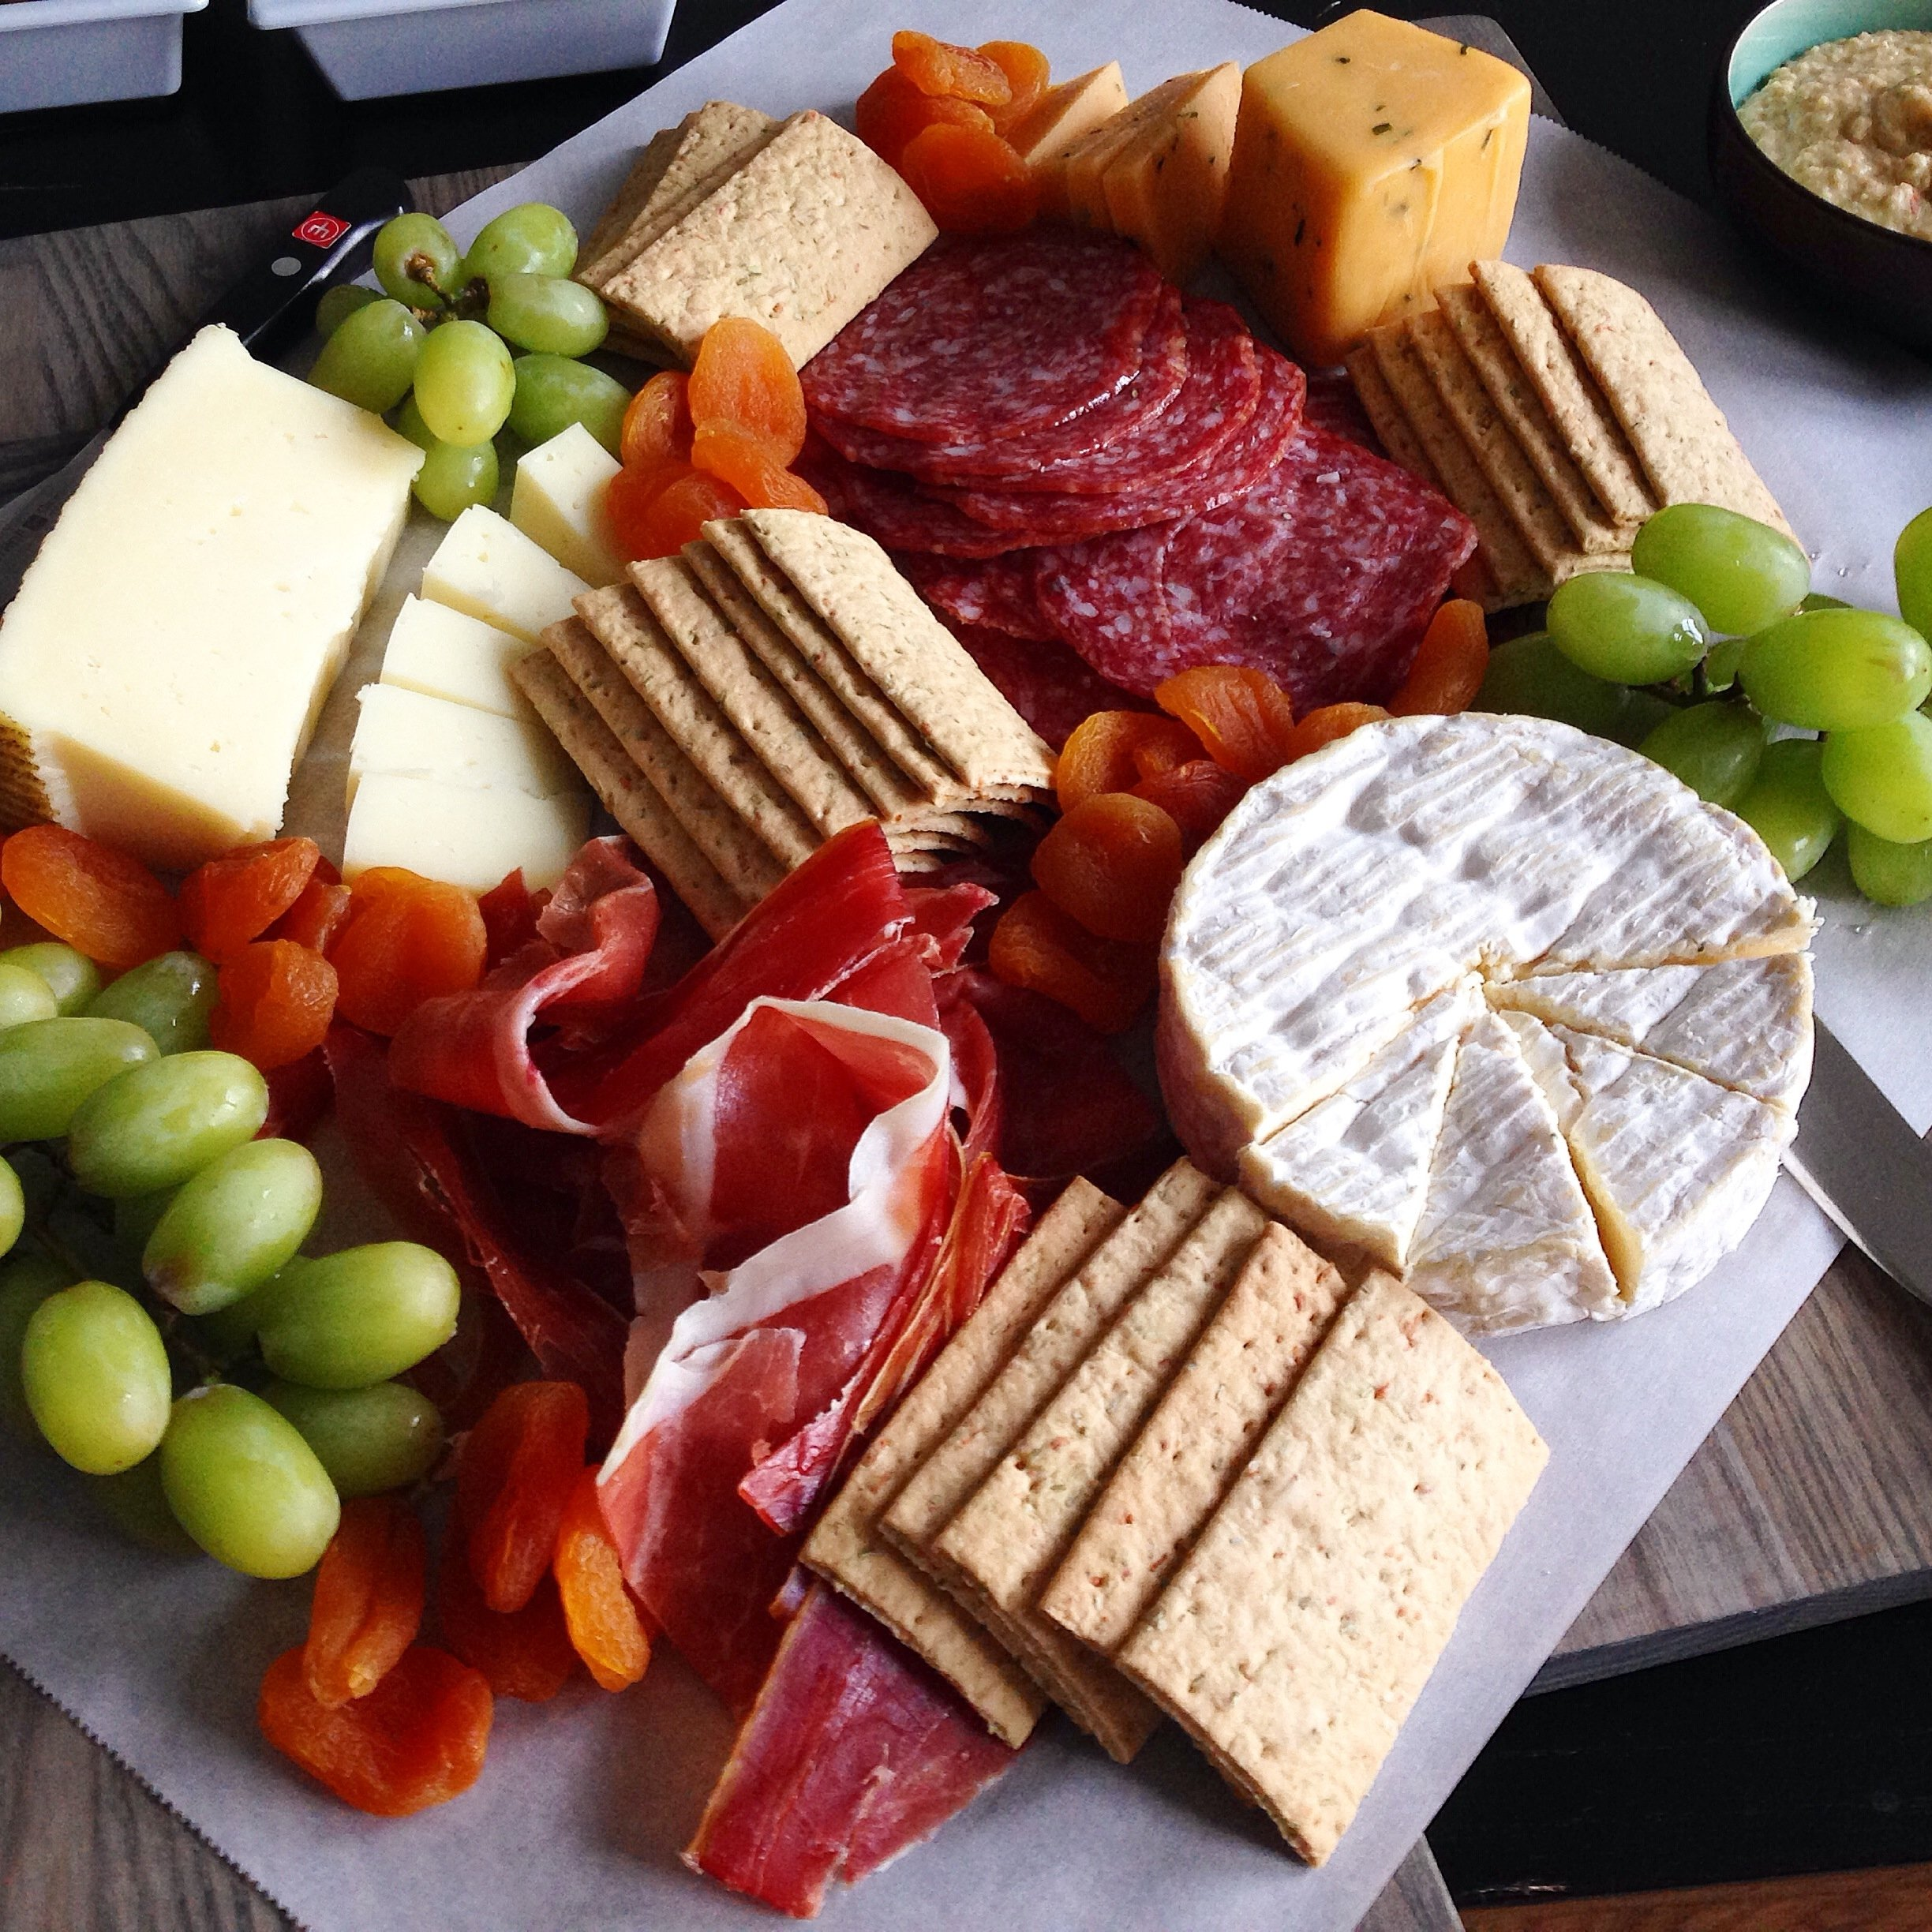 10 Perfect Fruit And Cheese Platter Ideas easy entertaining charcuterie and cheese board ahu eats 2021